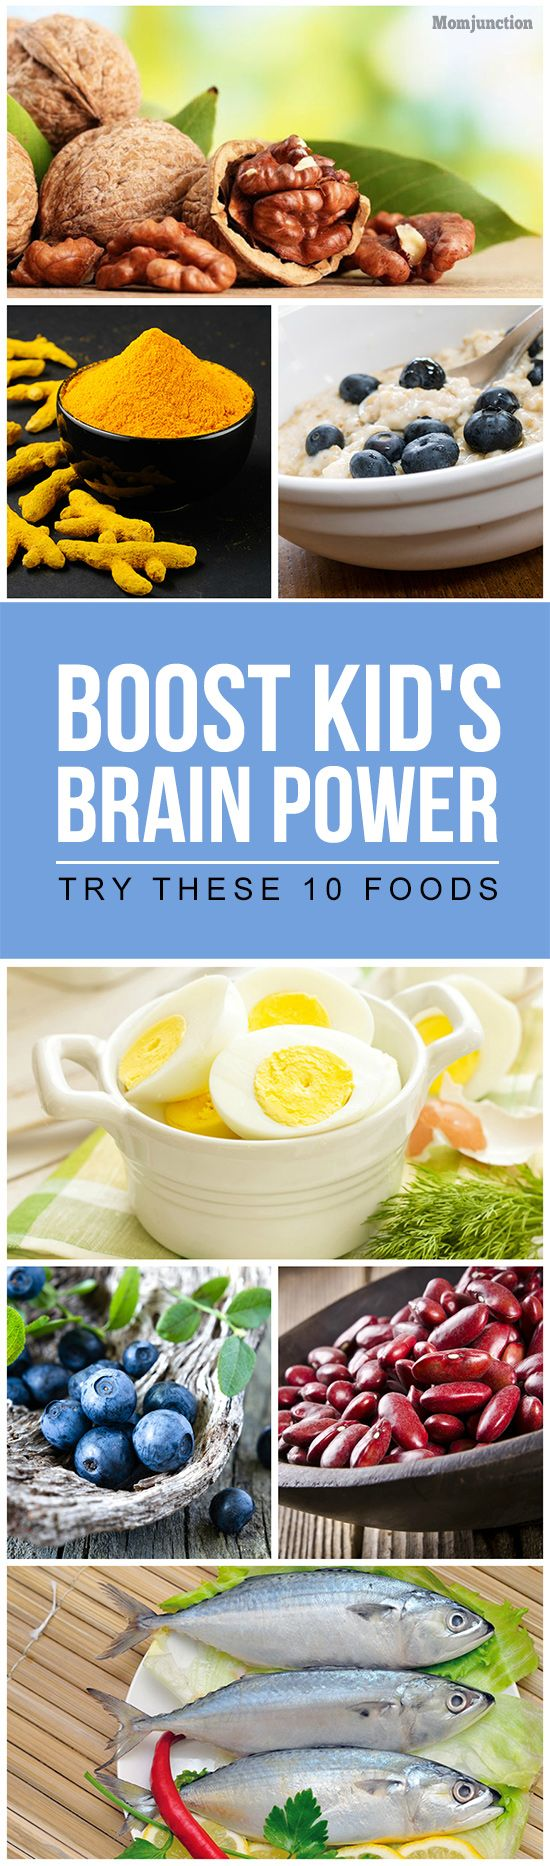 Kids Brain Foods: What your child eats has a big influence on his intelligence and cognitive powers!Check out the List Of 10 Foods For Brain Development In Children